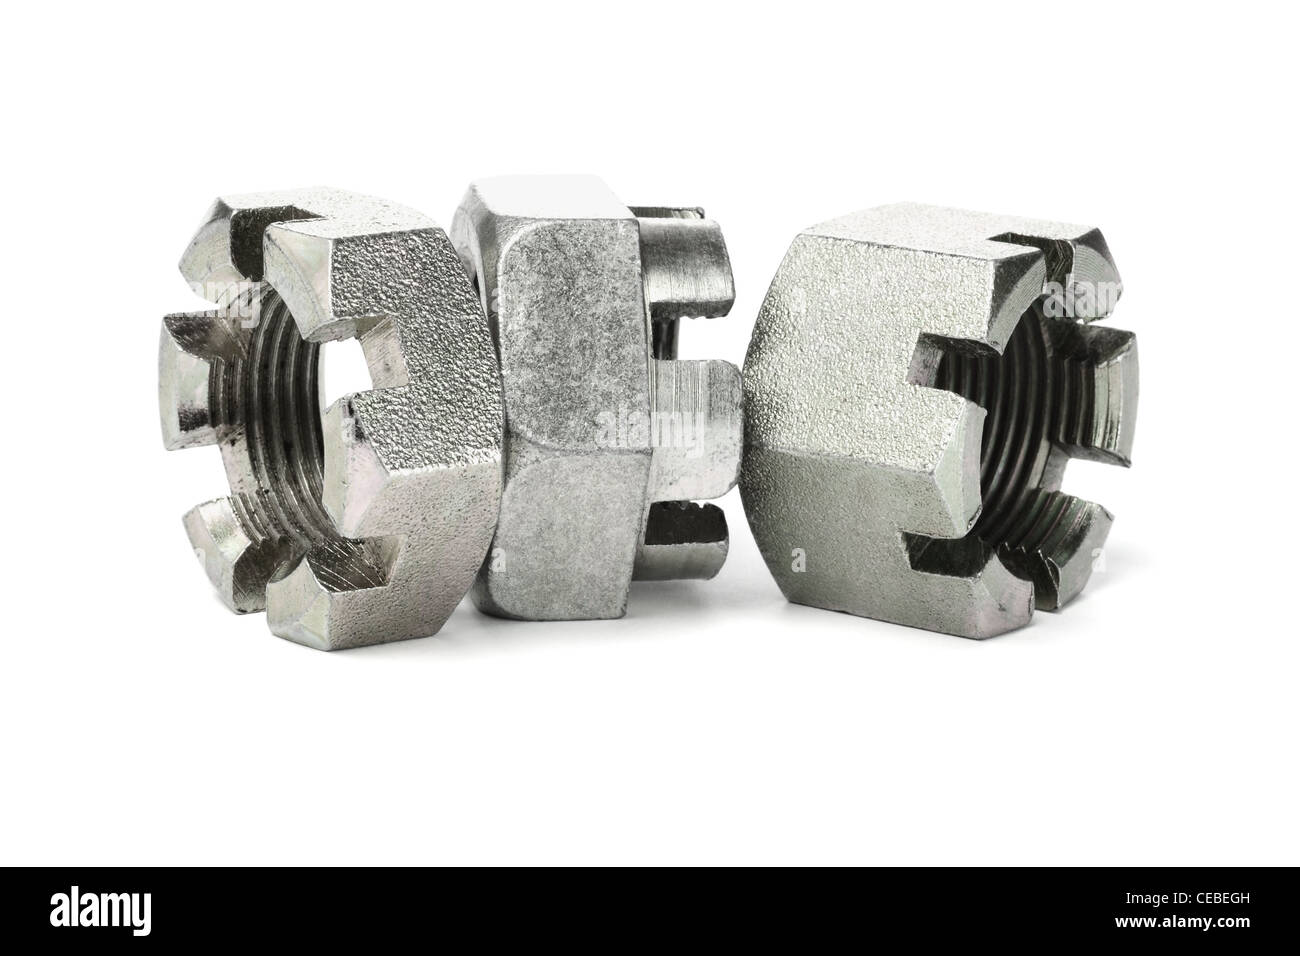 Three Hexagonal Metal Nuts on White Background - Stock Image